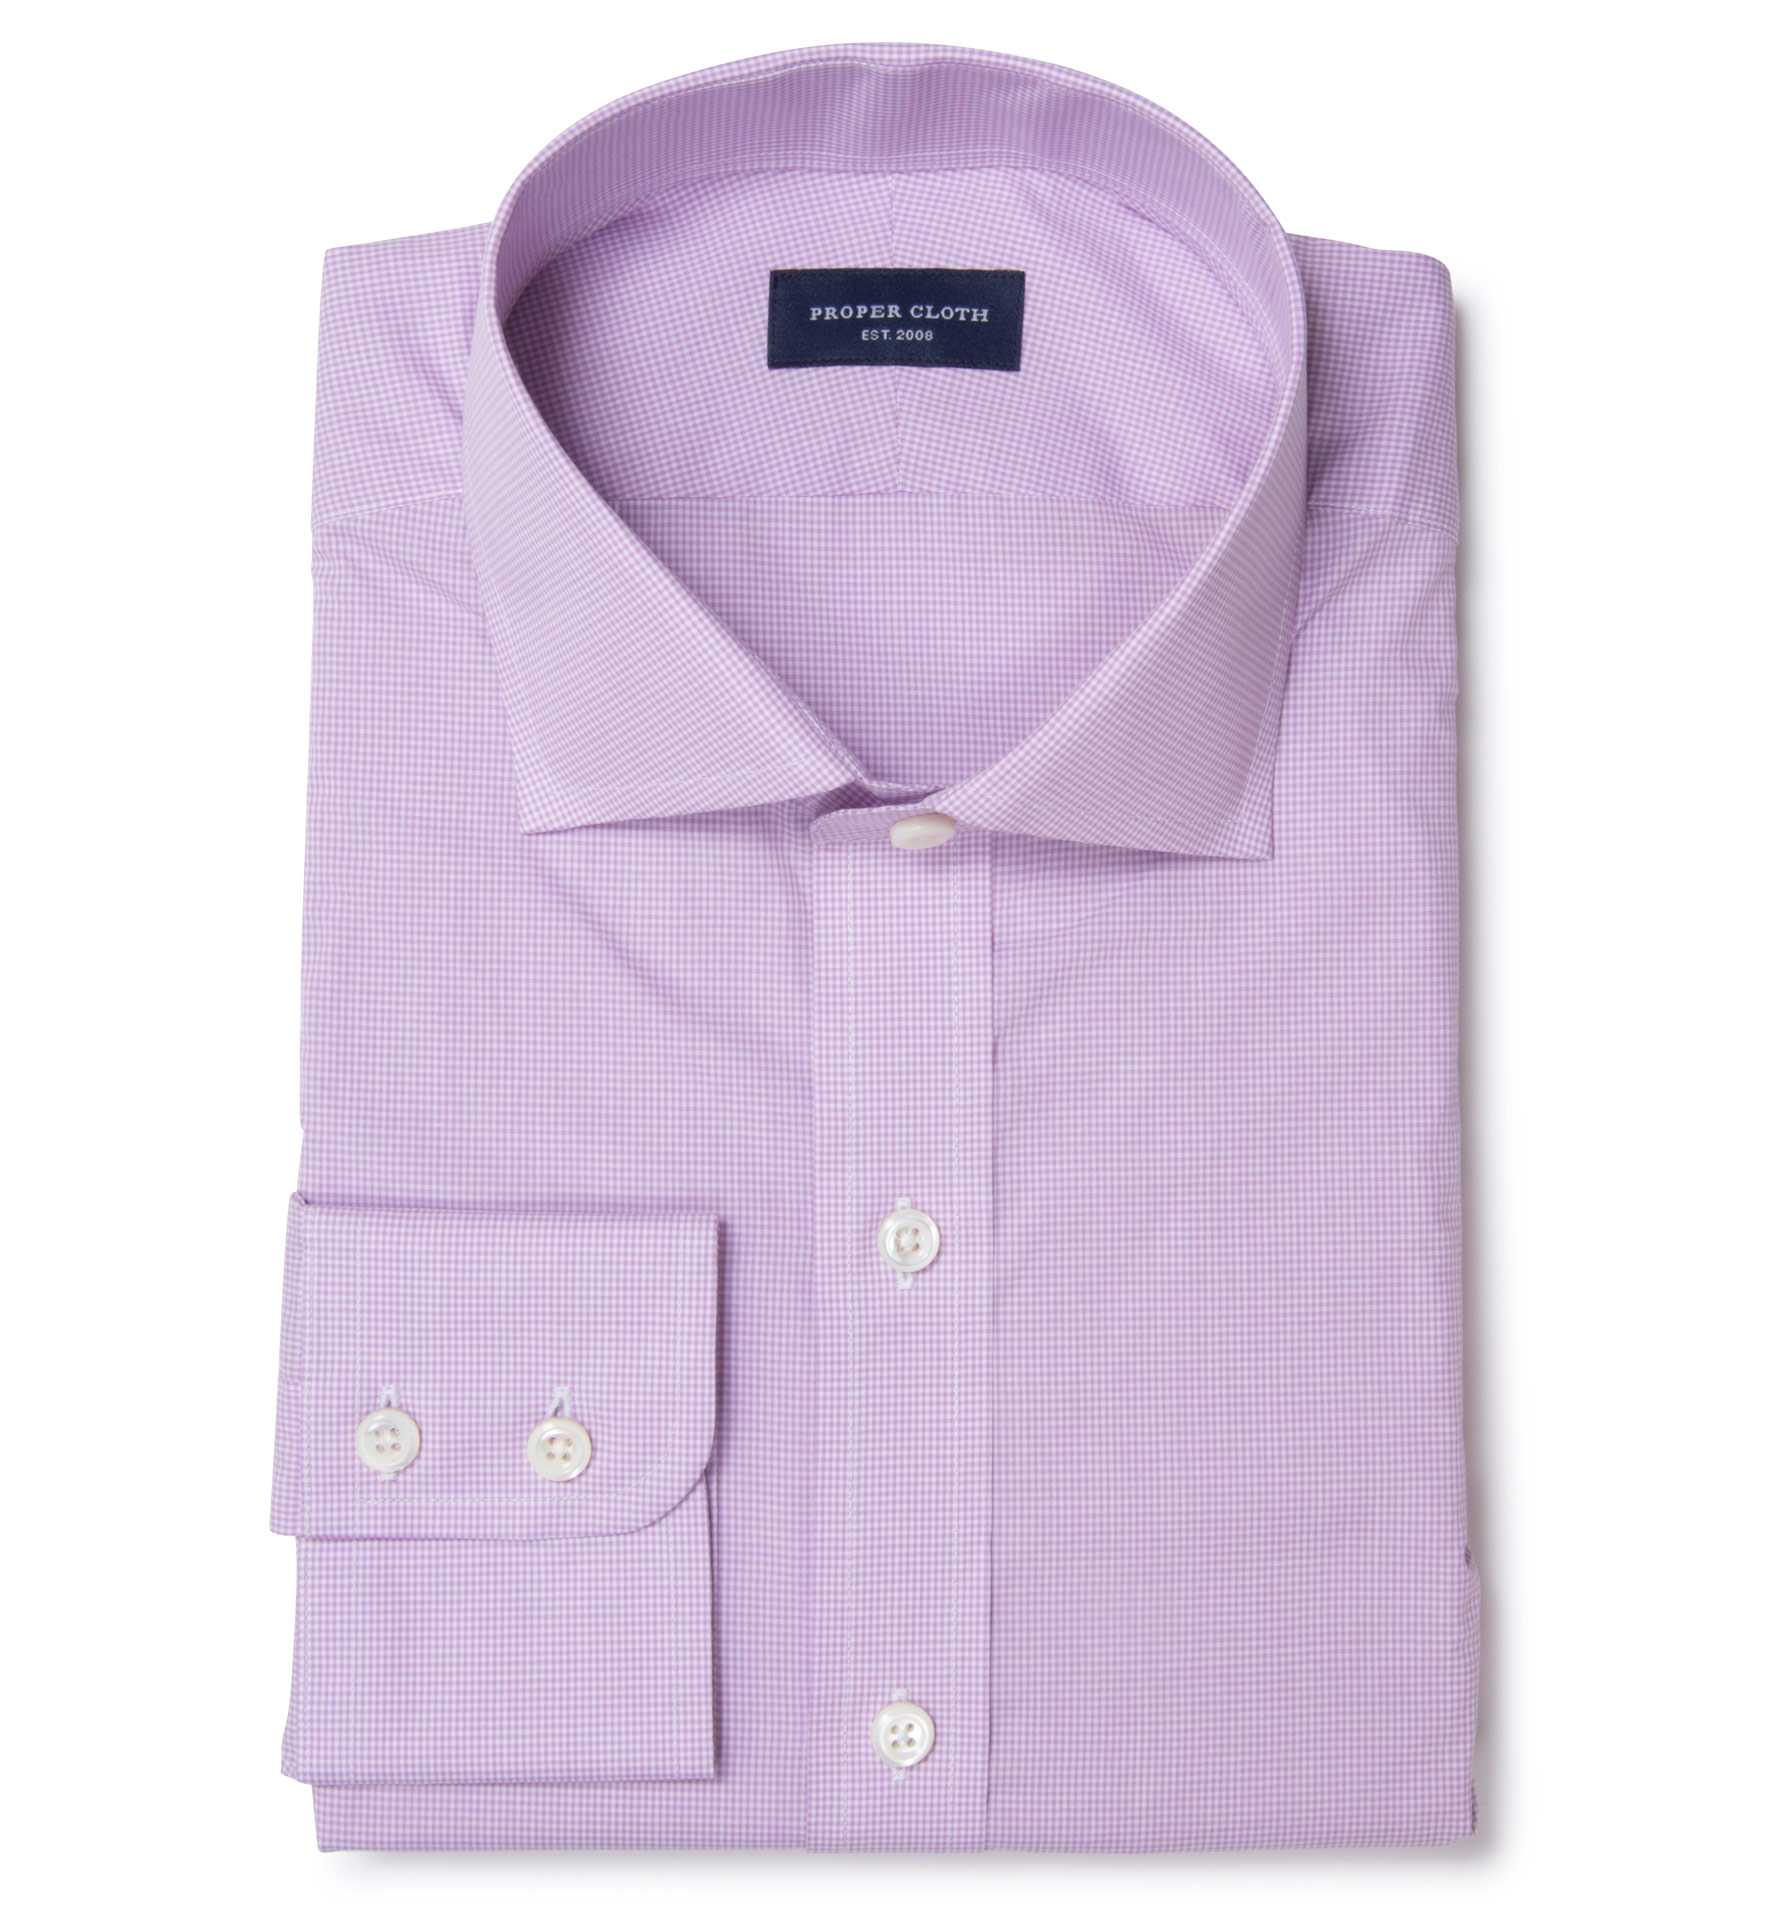 Canclini 140s lavender micro check men 39 s dress shirt by for Proper cloth custom shirt price